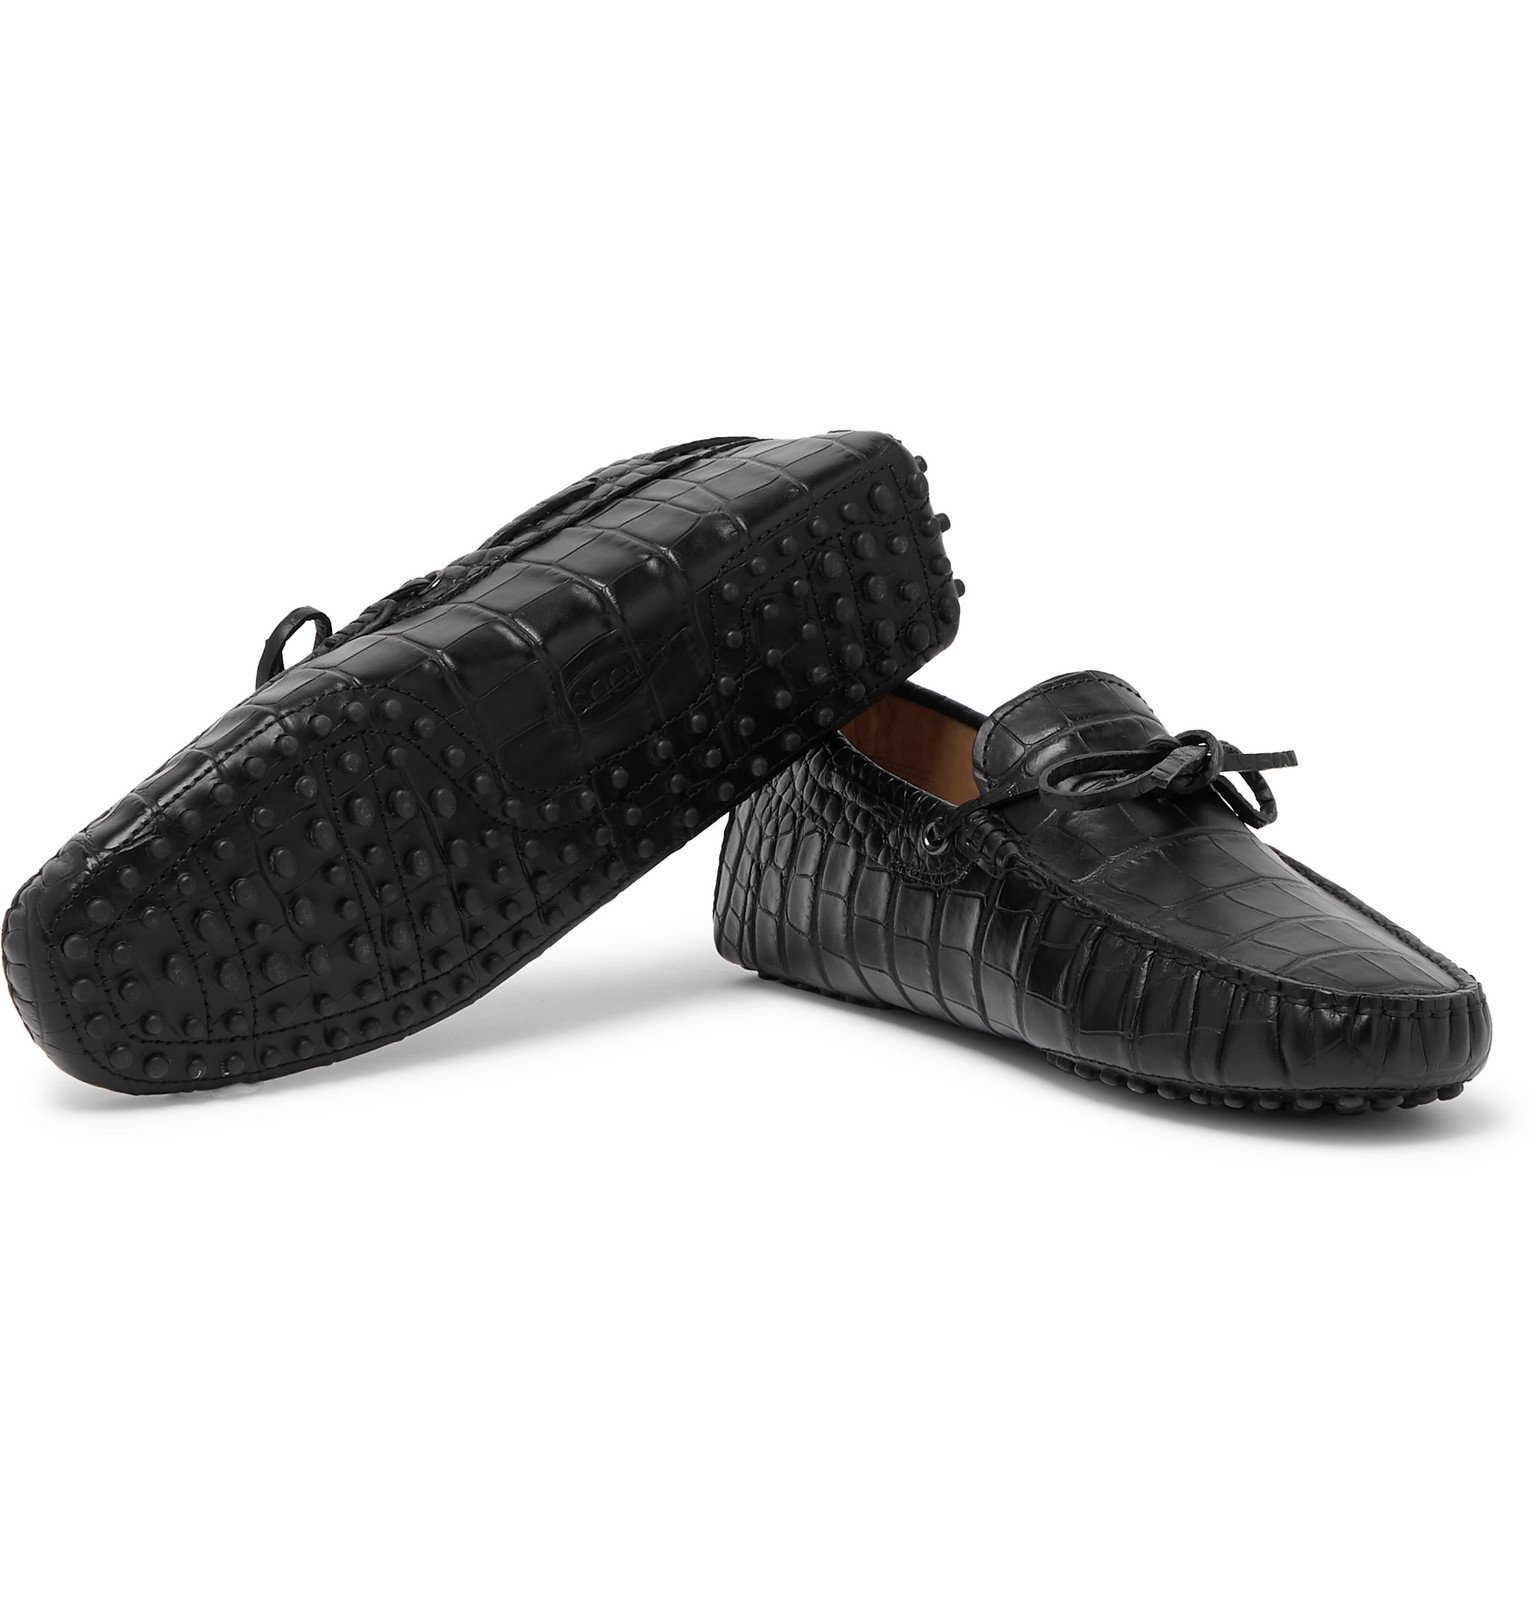 Tod's - Gommino Croc-Effect Leather Driving Shoes - Black